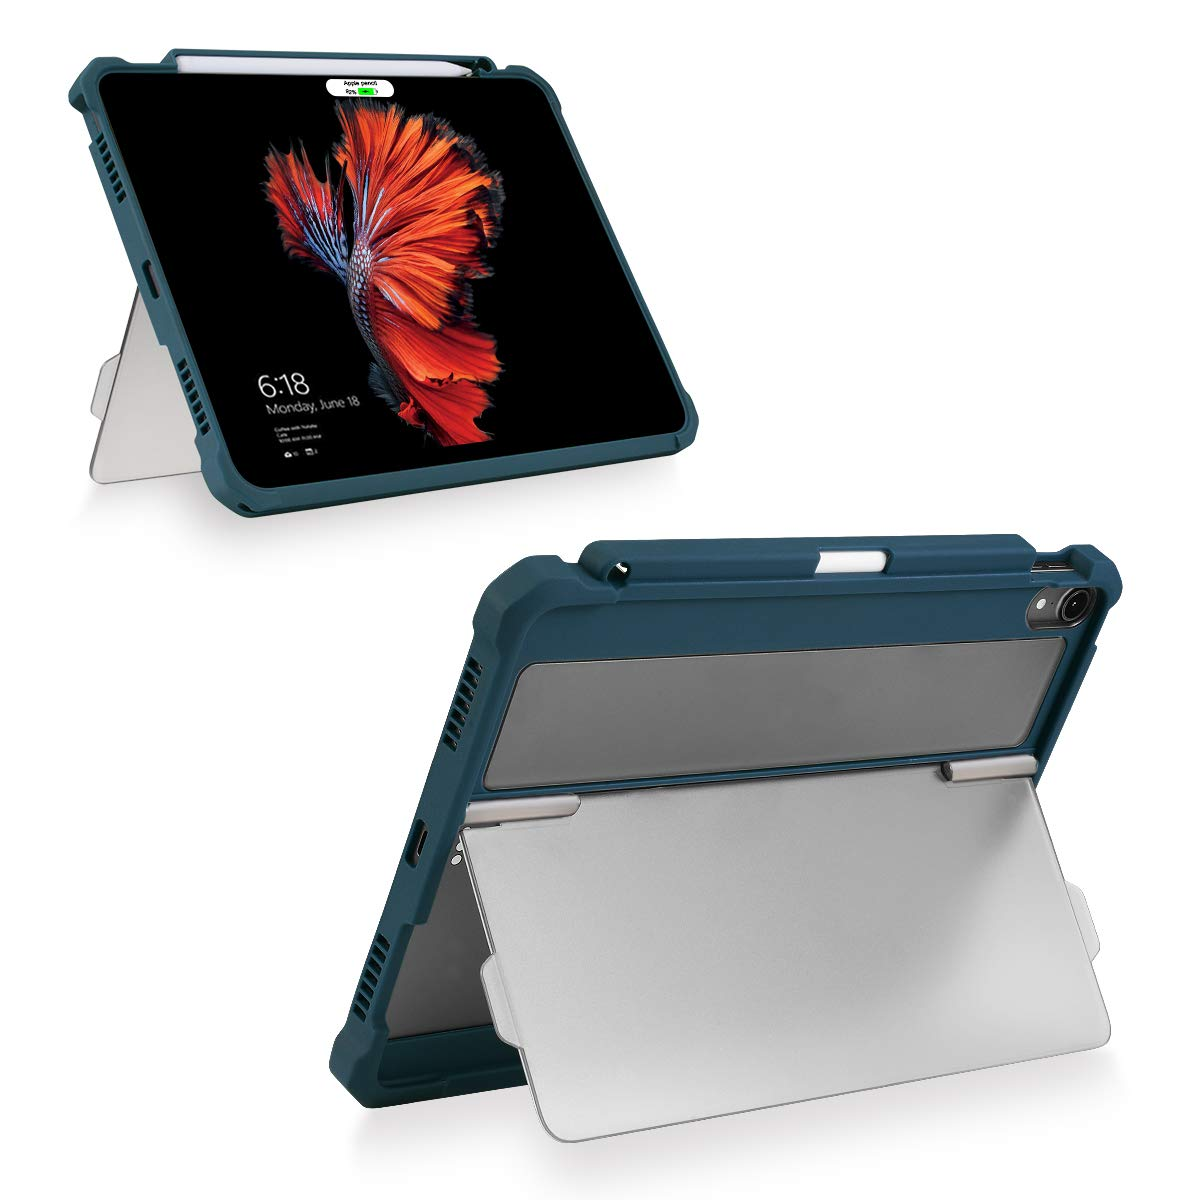 """Maxjoy Compatible for iPad Pro 11 Cover, iPad Pro 11 Case, [Support Pencil Charging], Shockproof Rugged iPad 11 Protective Cover with Kickstand Stand + Apple Pencil Holder for iPad Pro 11"""" 2018, Blue"""